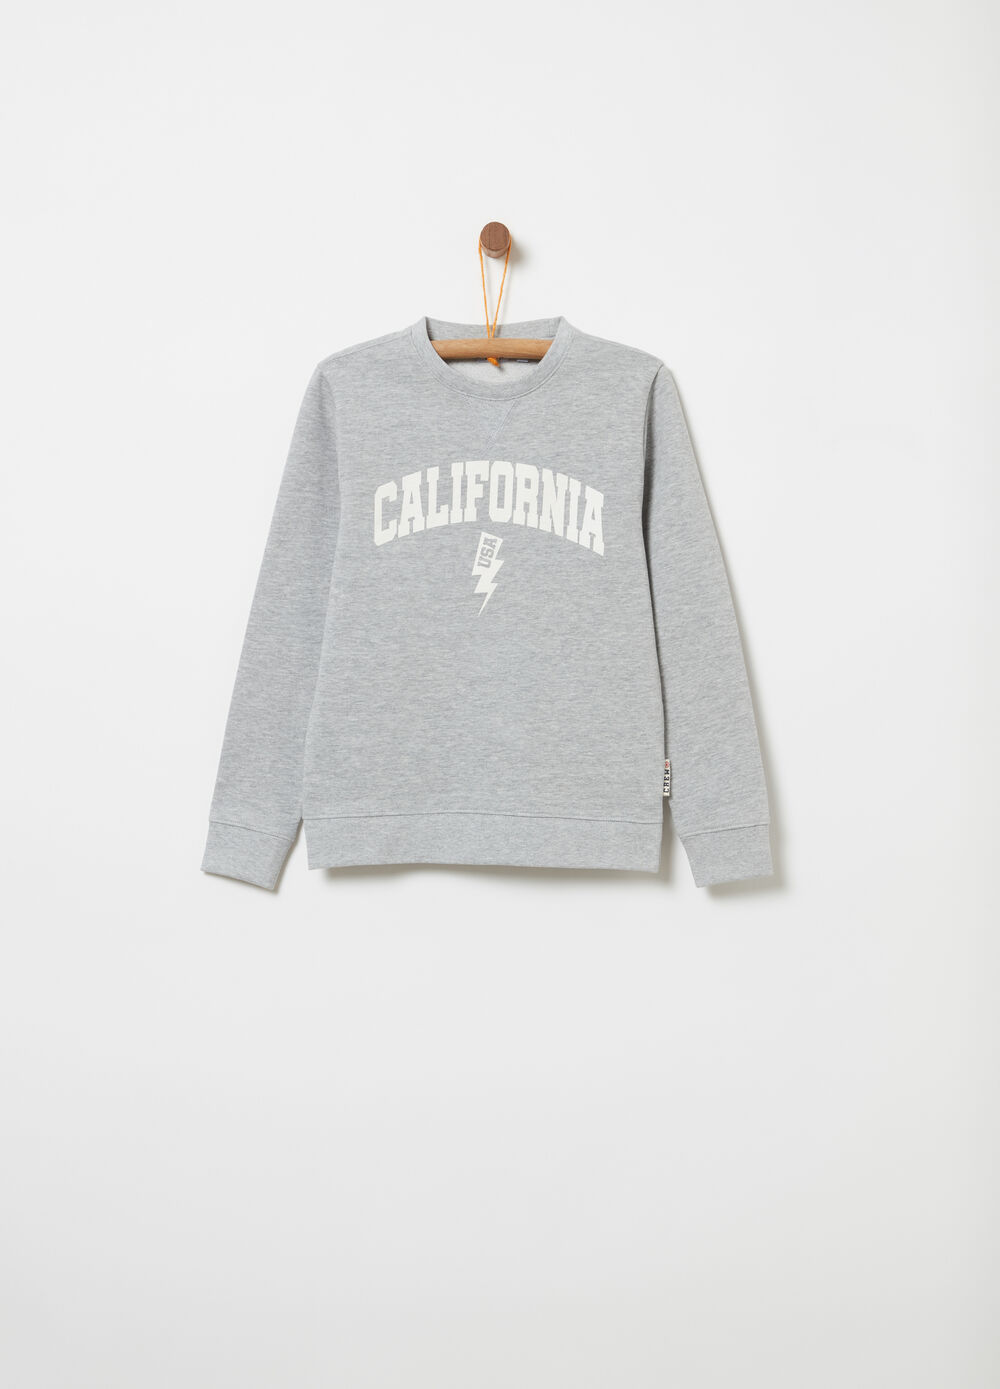 French terry sweatshirt with round neck and print